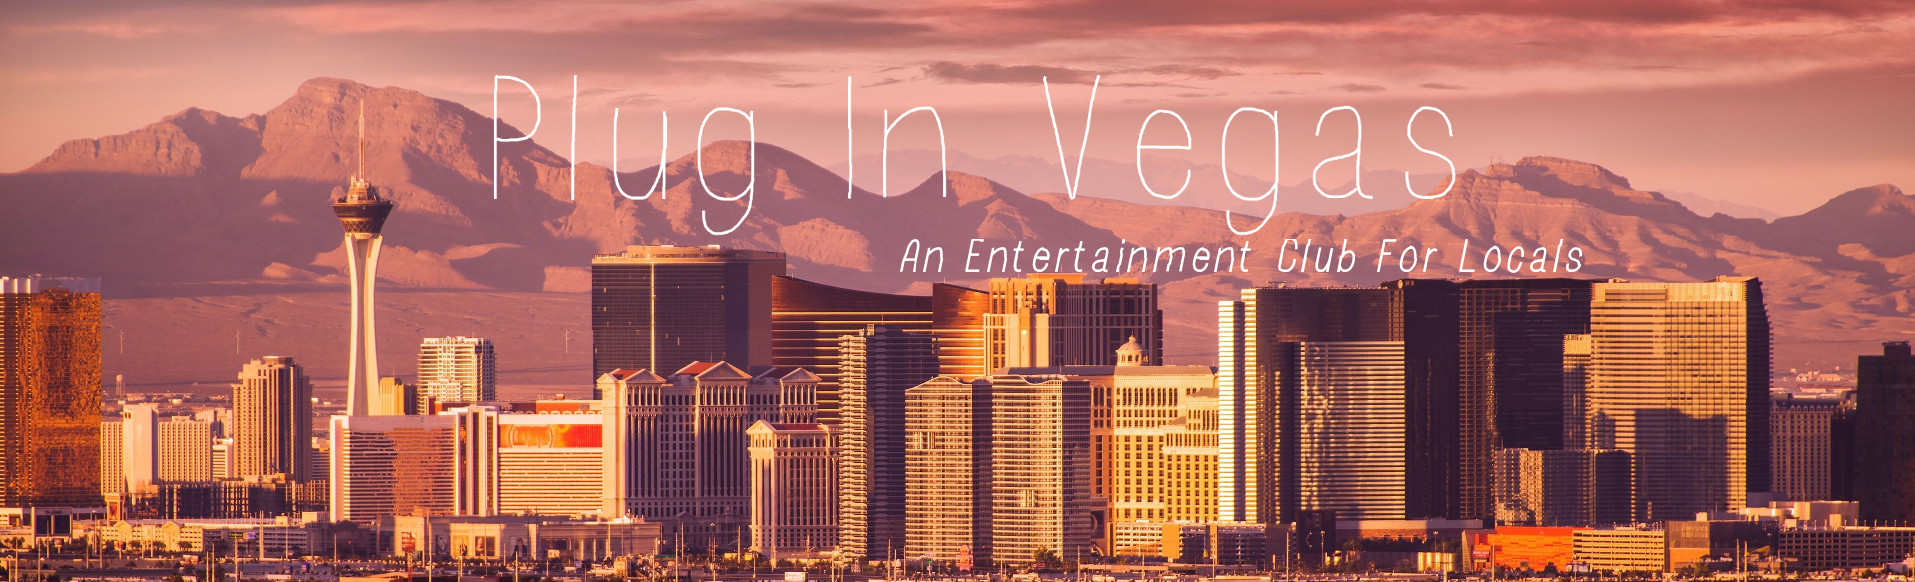 Plug In Vegas, show ticket deals and events for locals